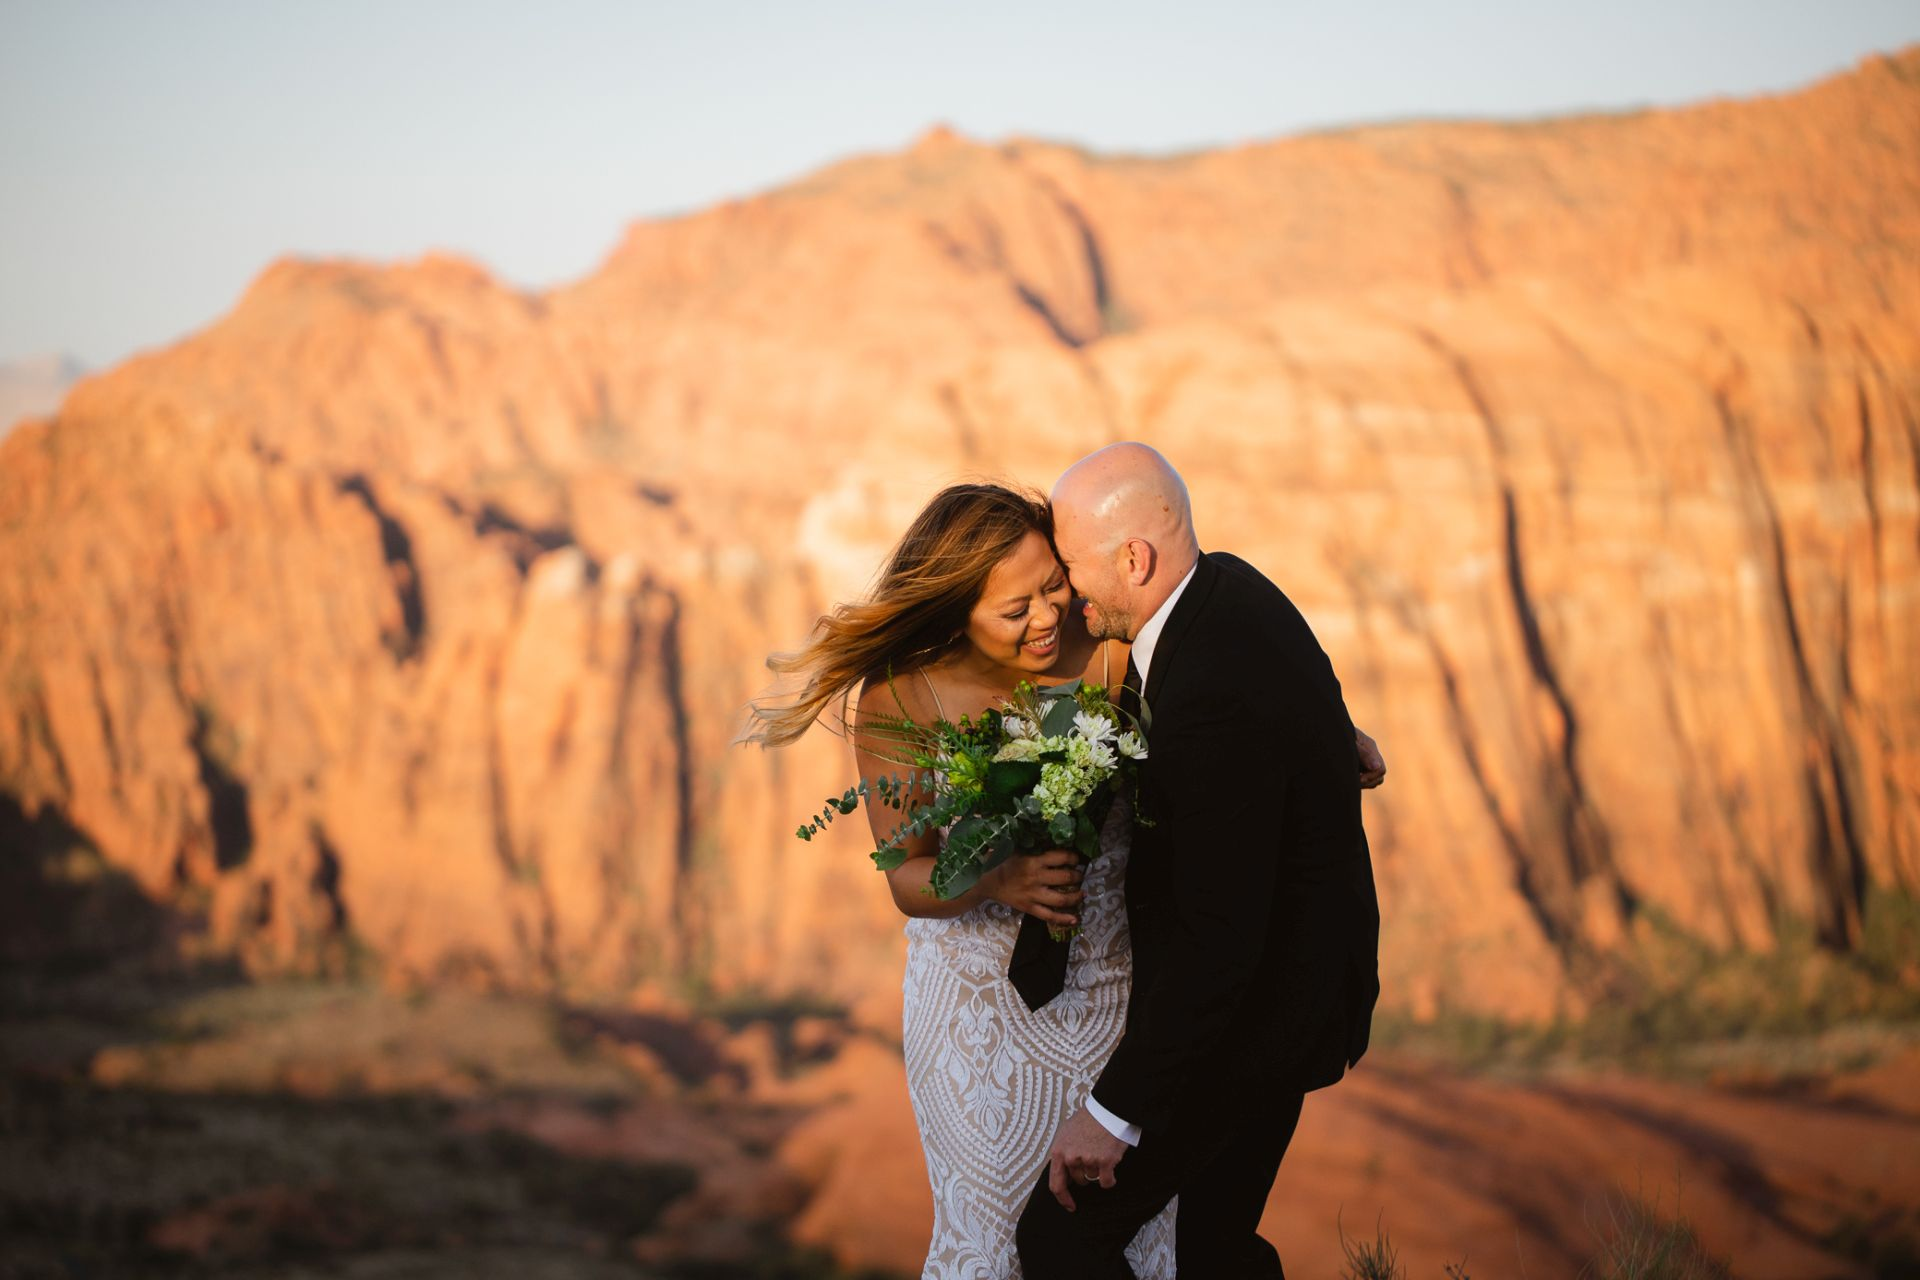 adventure wedding utah desert - photographer captures couple deeply in love before glowing mountain range